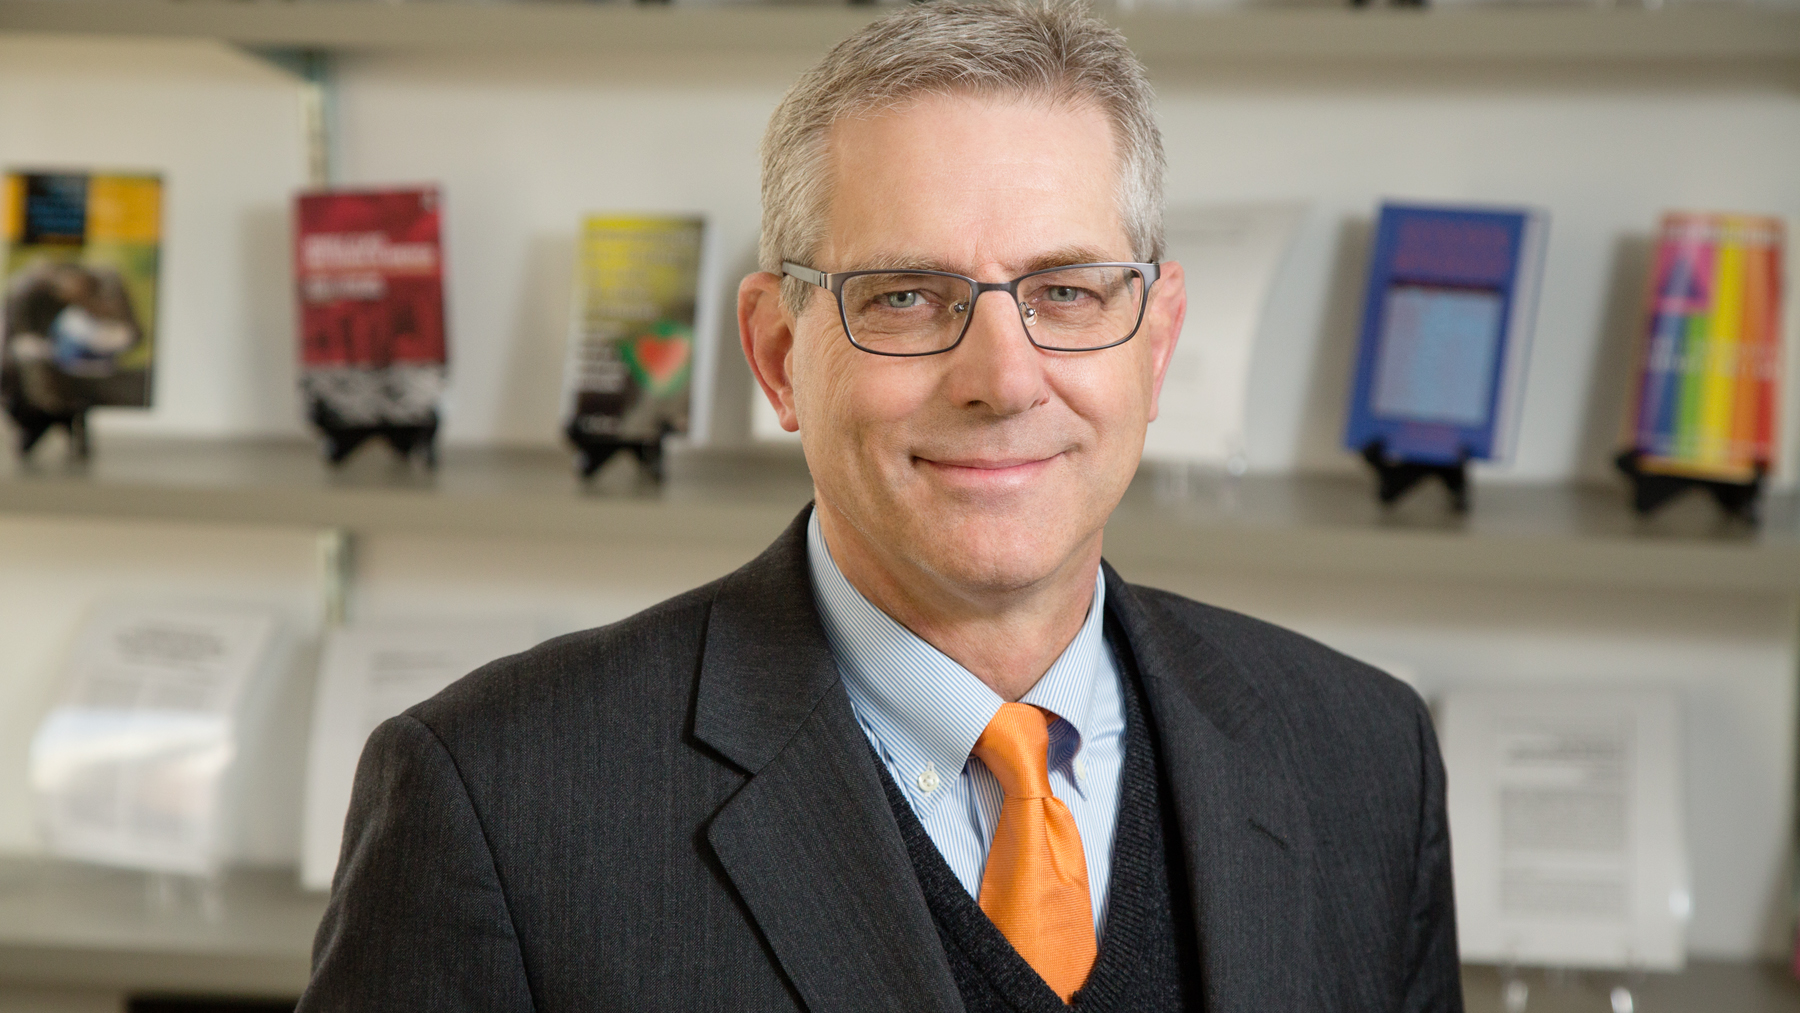 Kevin Leicht, a professor of sociology at the University of Illinois Urbana-Champaign. Photo by L. B. Stauffer